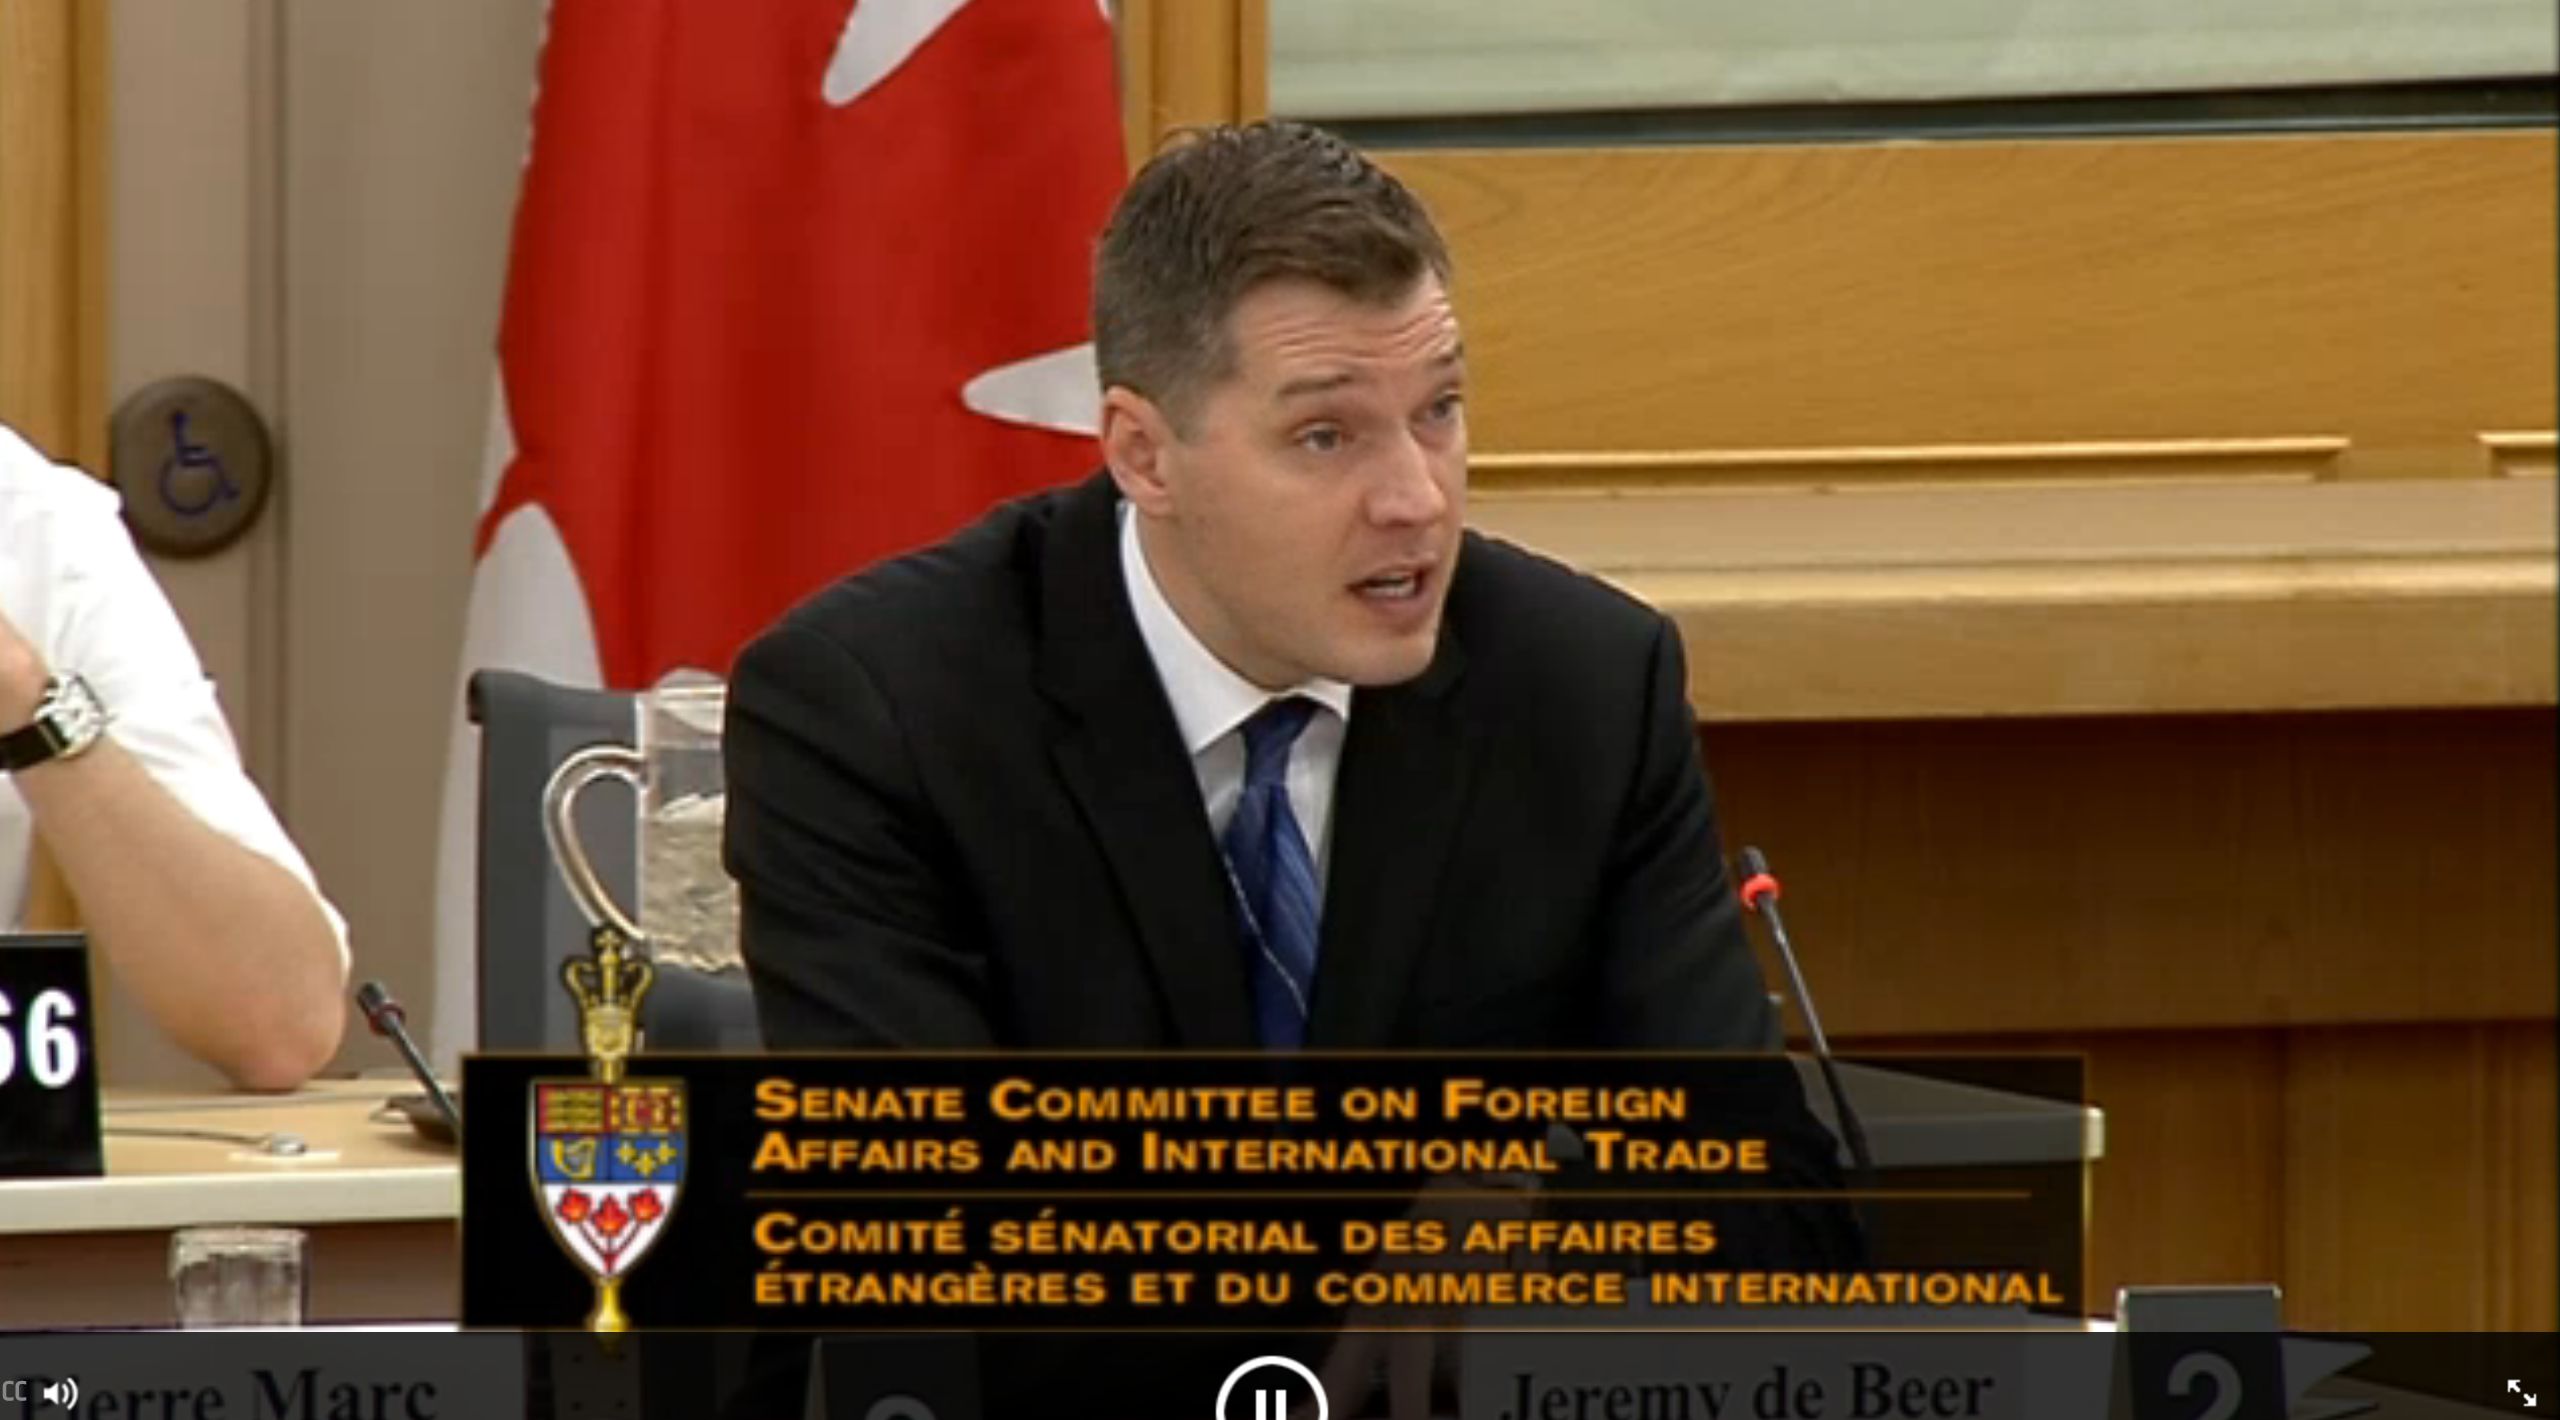 Professor de Beer testifies to Senate about CETA, intellectual property and innovation.